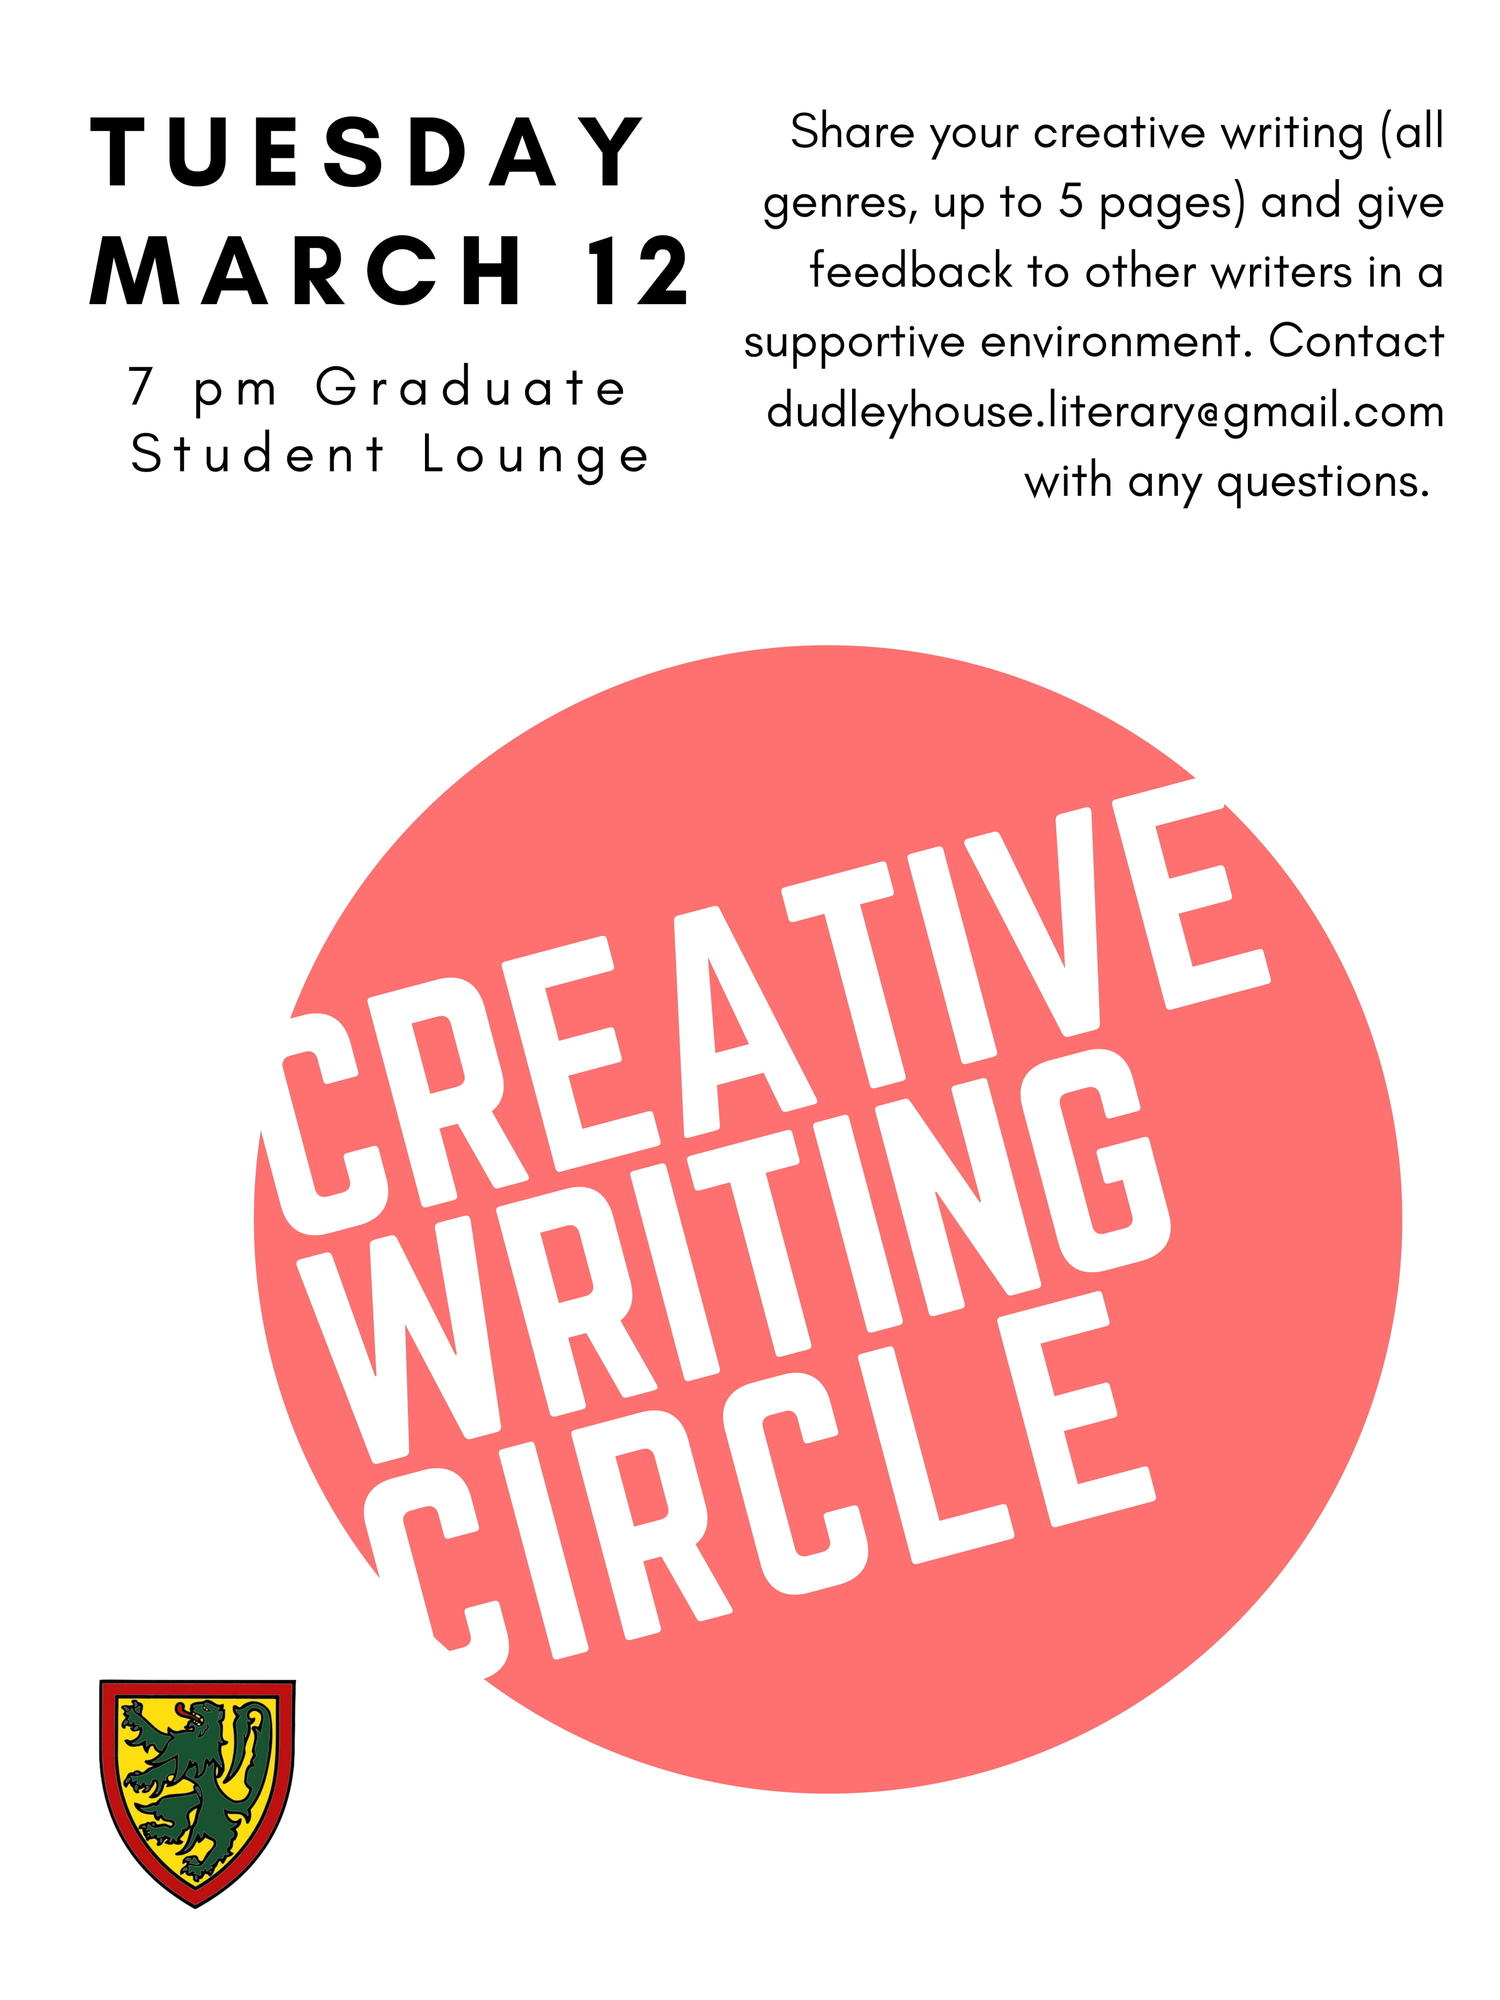 creative writing circle will be on march 12 at 7 pm in the graduate student lounge